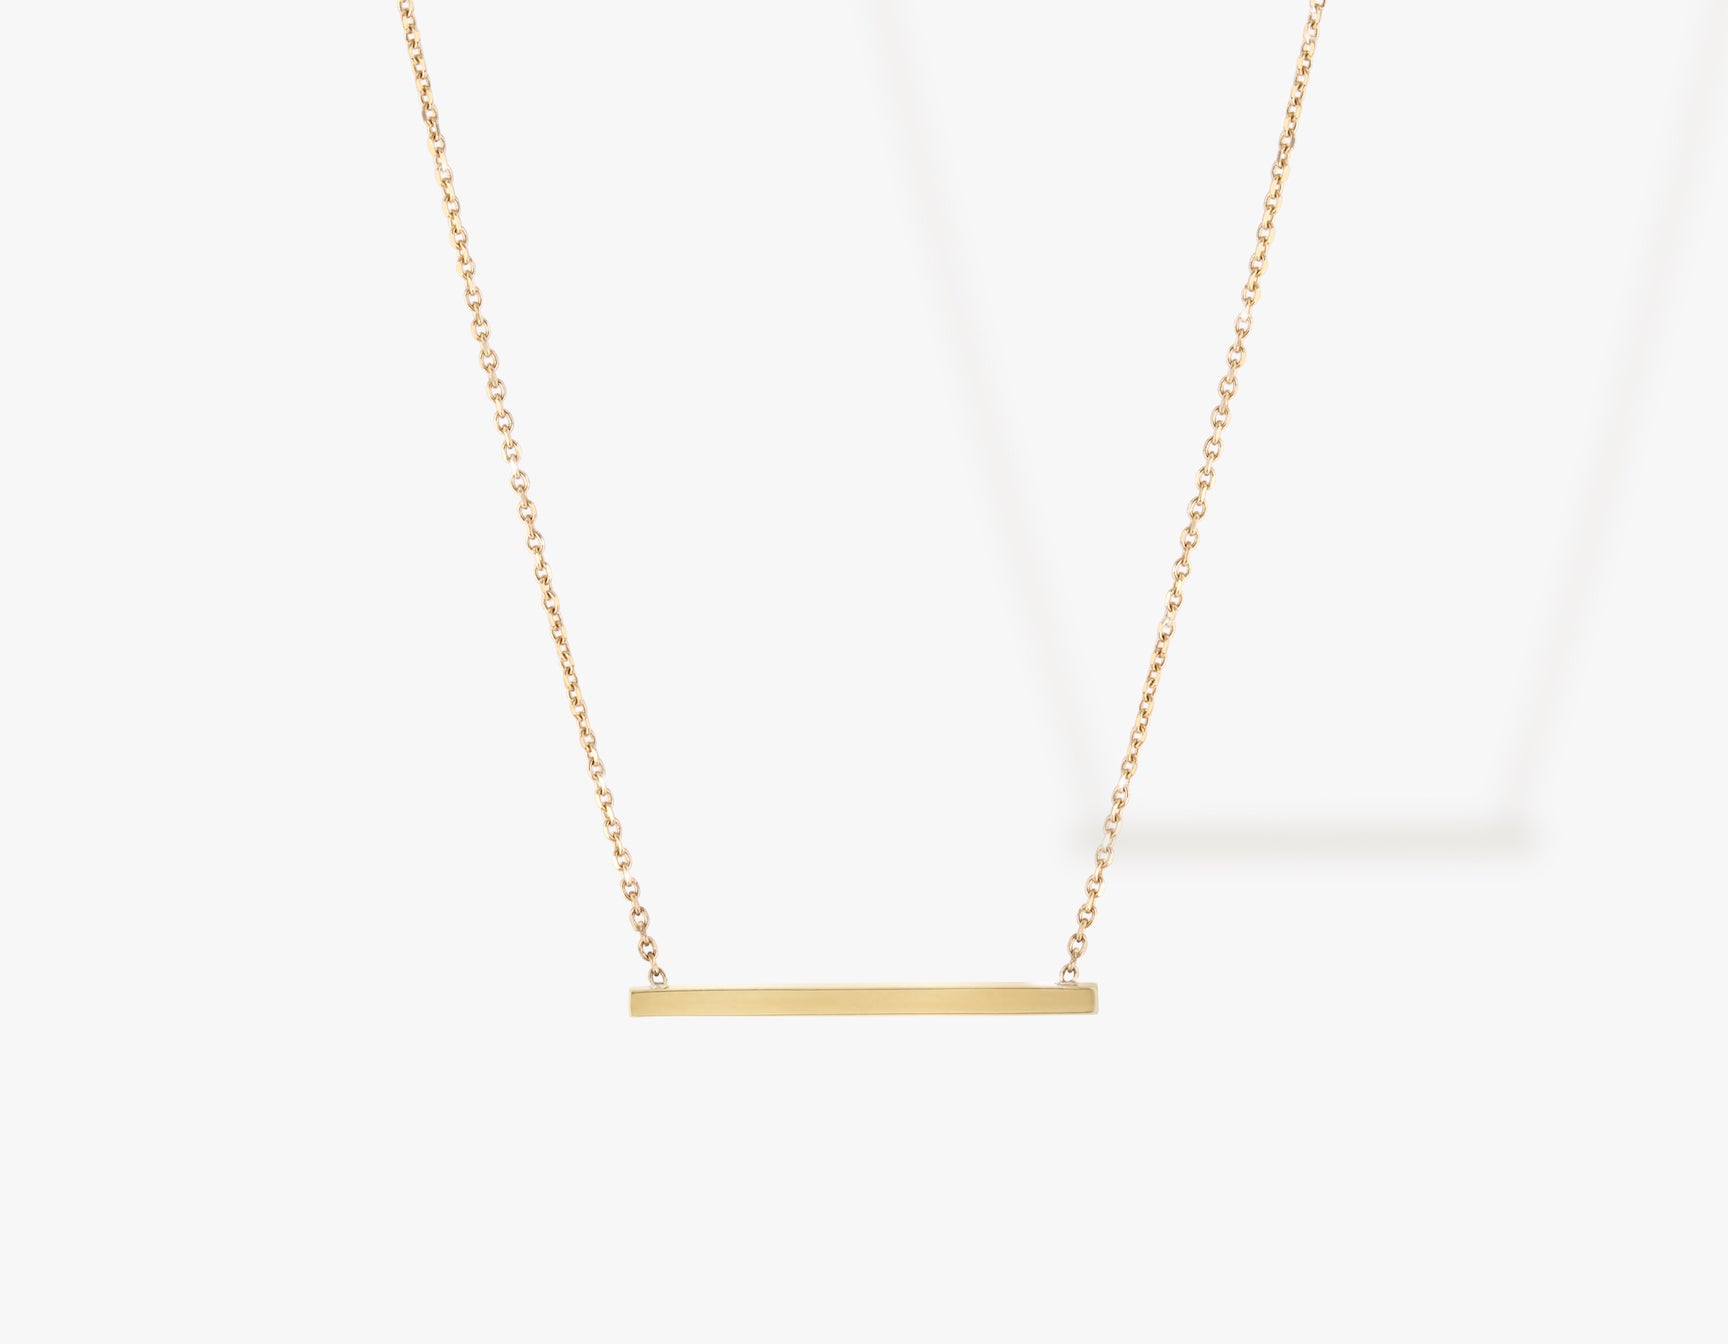 Vrai solid gold Line Necklace, 14K Yellow Gold